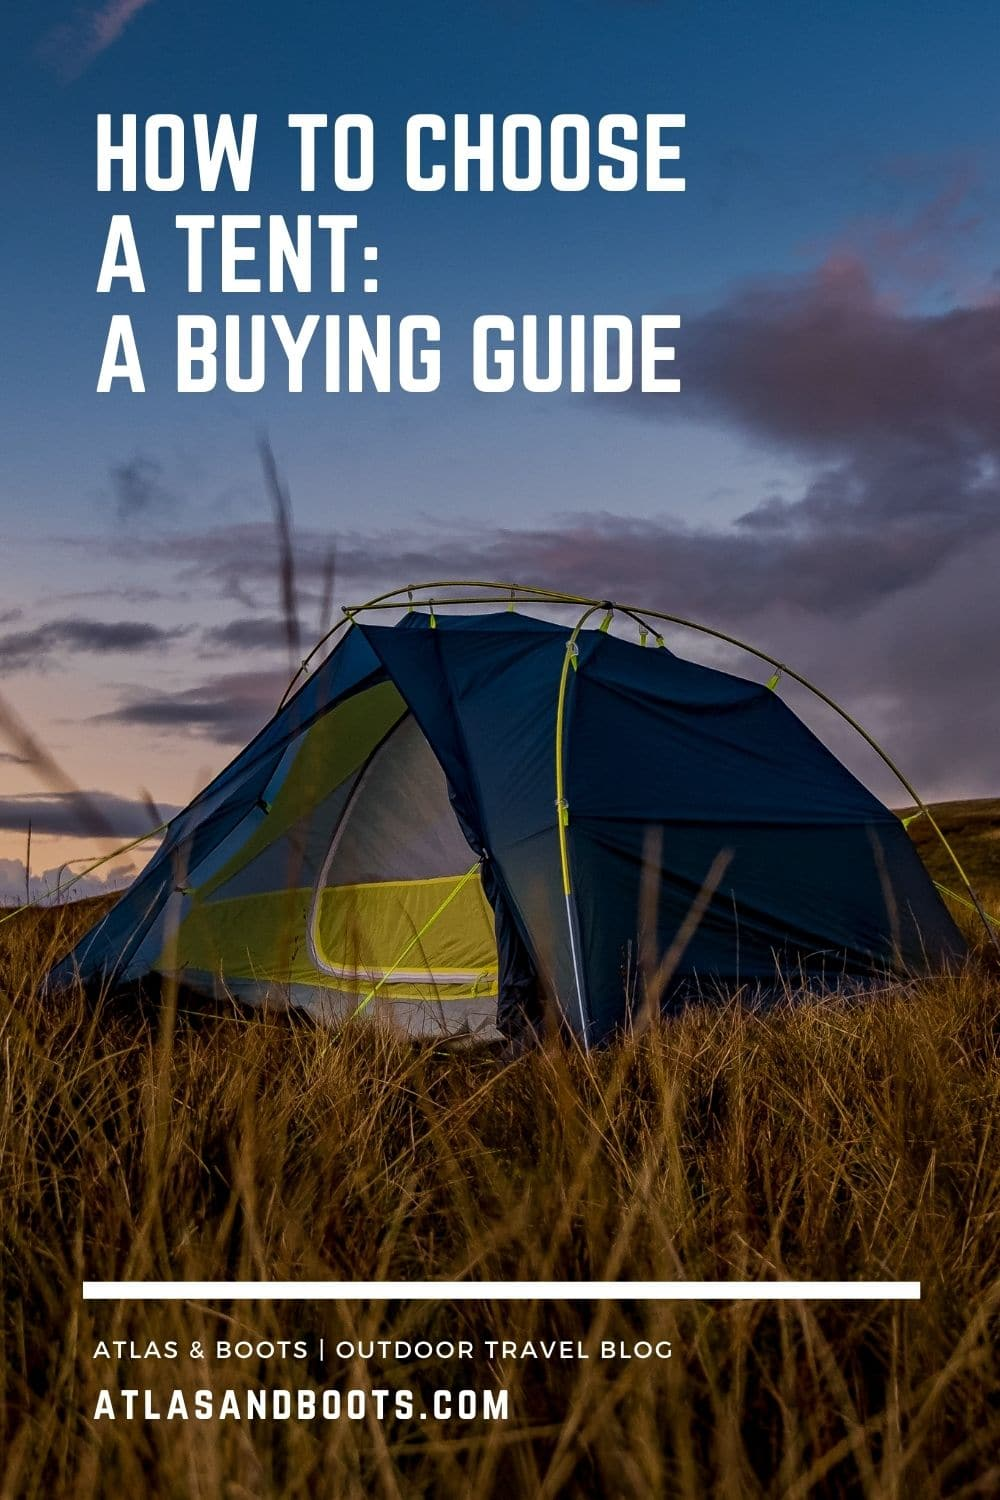 How to choose a tent pinterest post